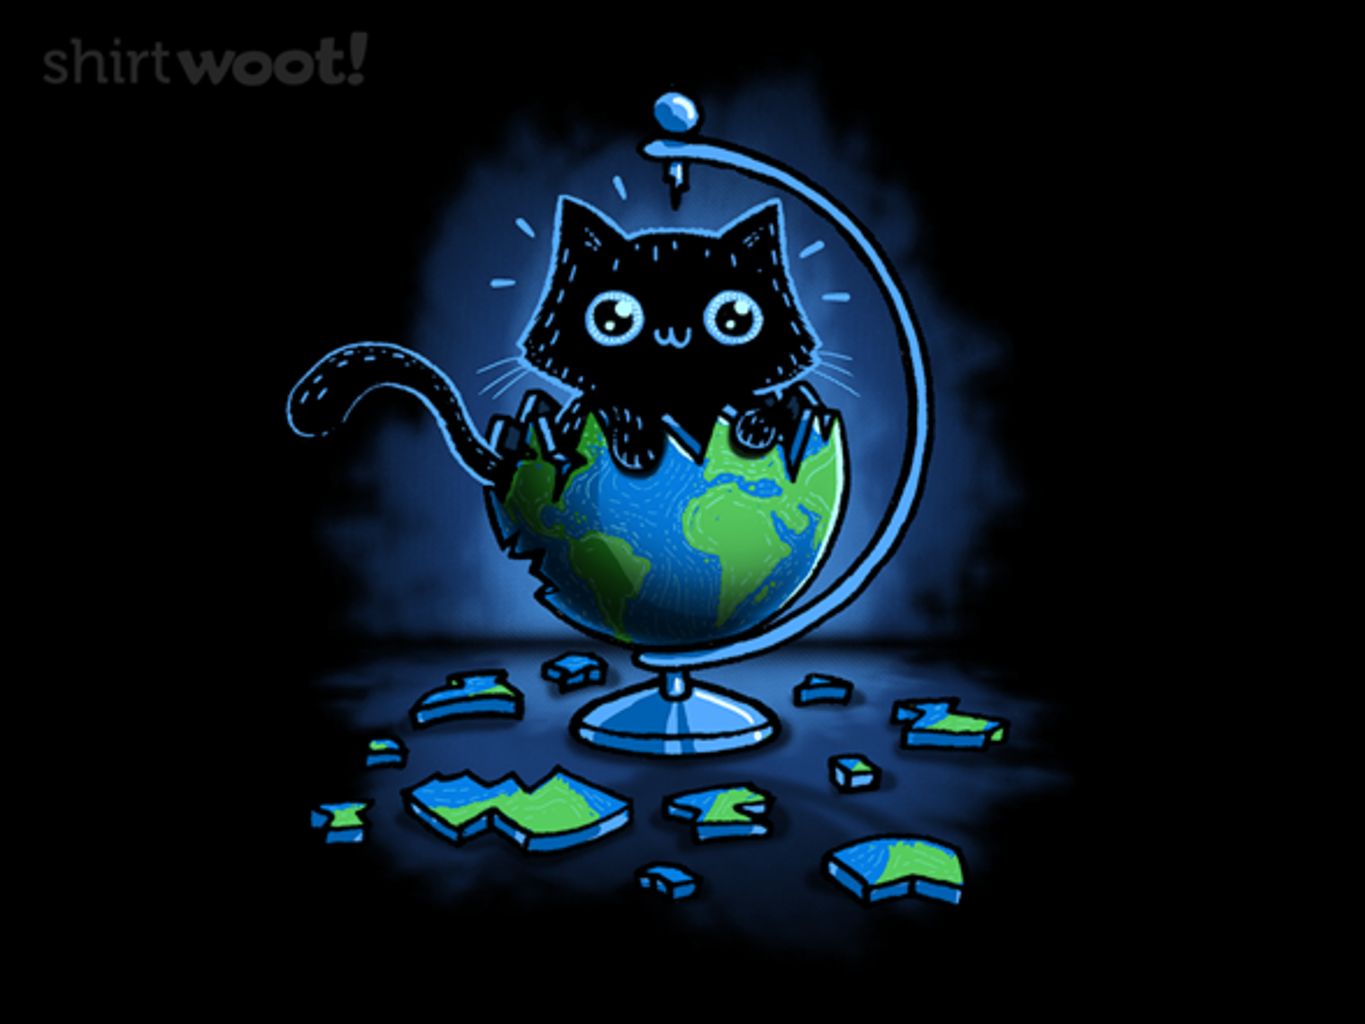 Woot!: Purrrfect World